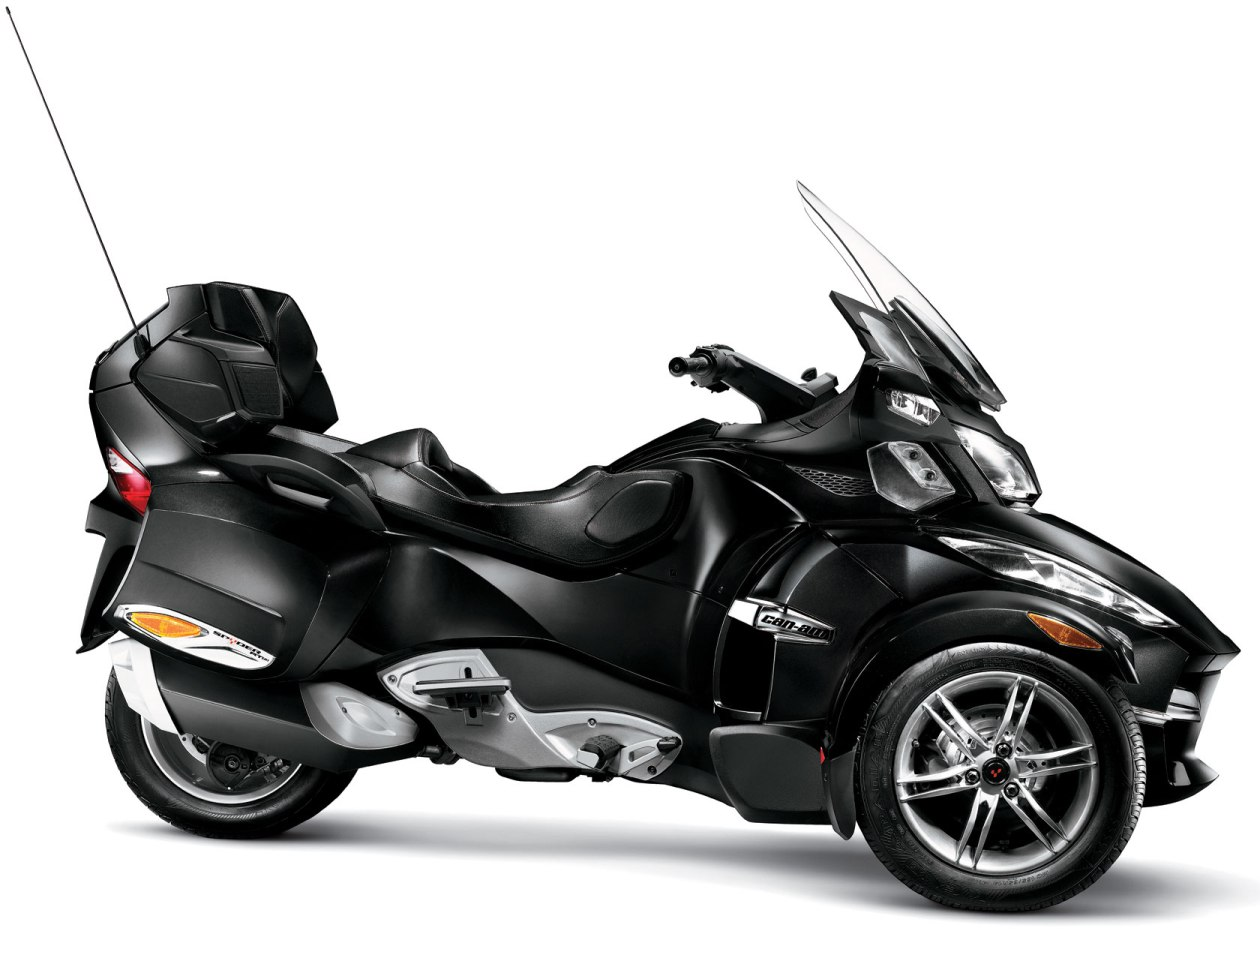 2011 Can-Am Spyder RT-S Timeless black metallic